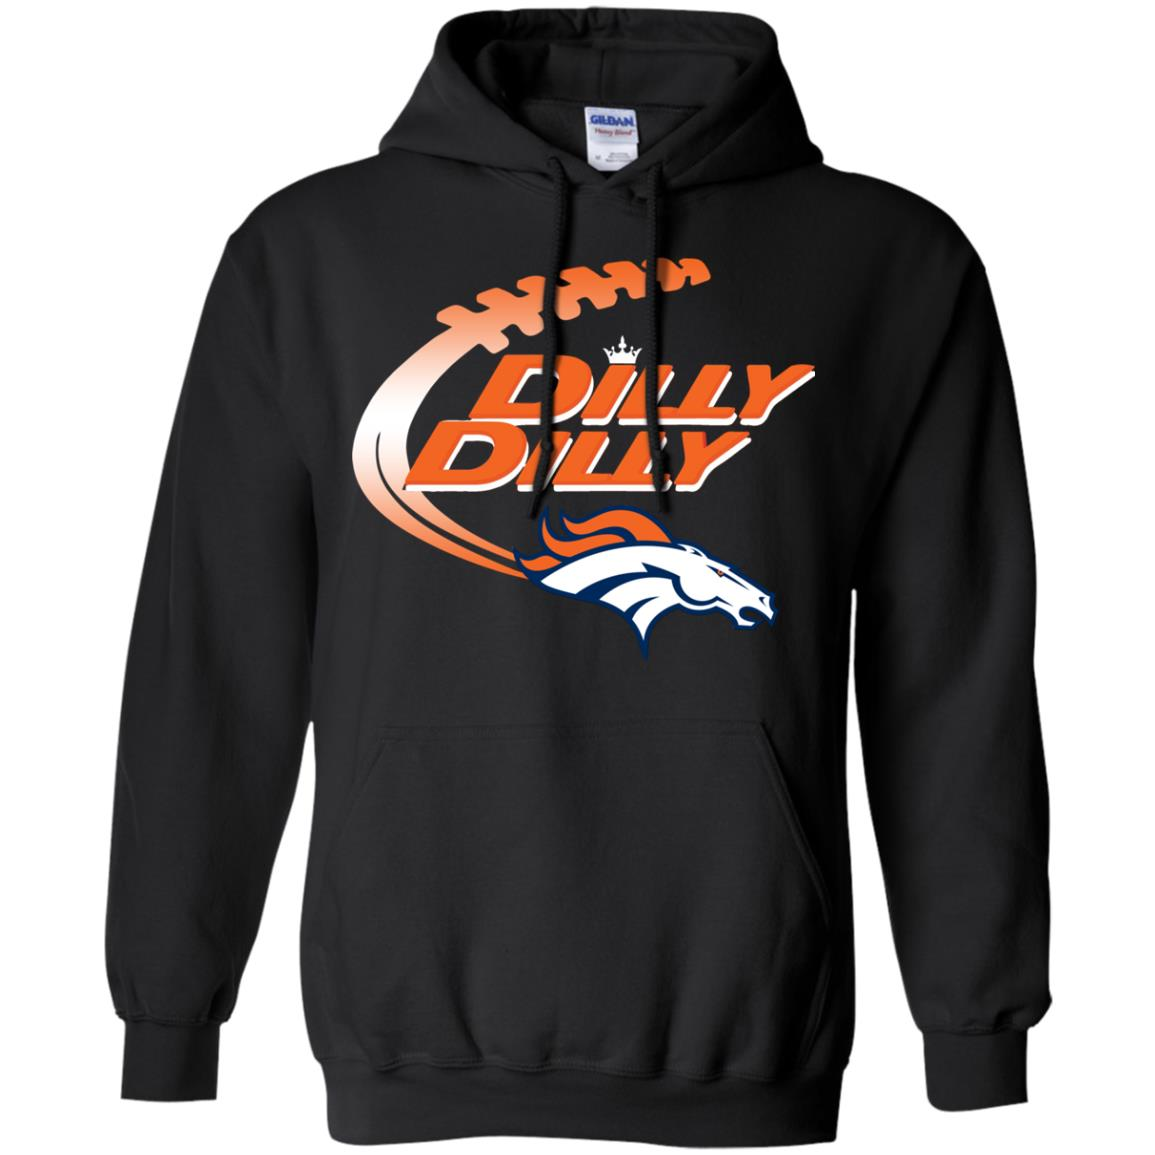 image 1855 - Dilly Dilly Denver Broncos Shirt, Hoodie, Sweater